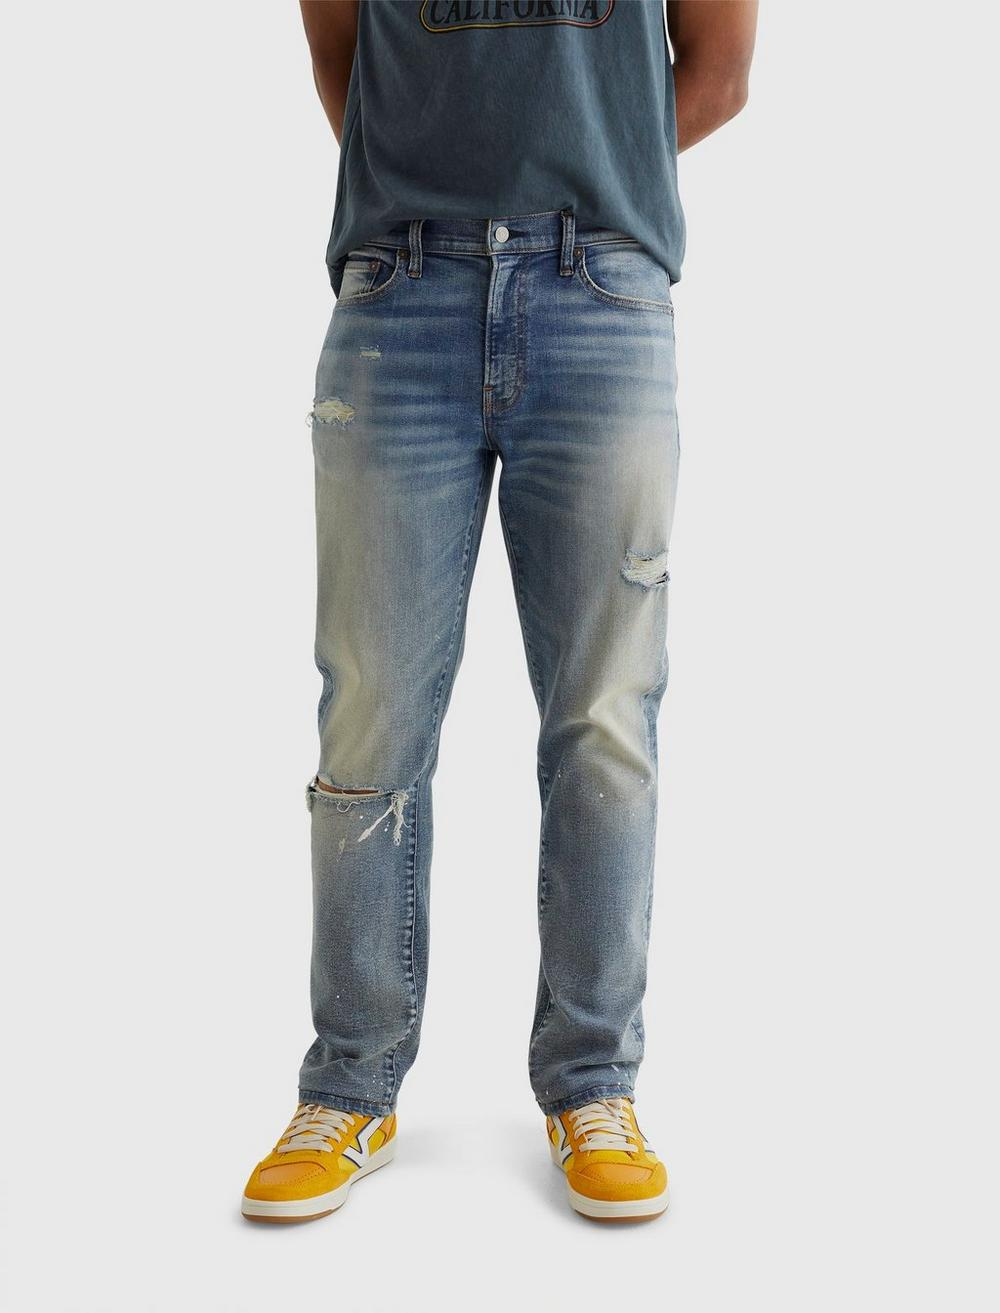 410 ATHLETIC STRAIGHT 4-WAY STRETCH JEAN, image 1